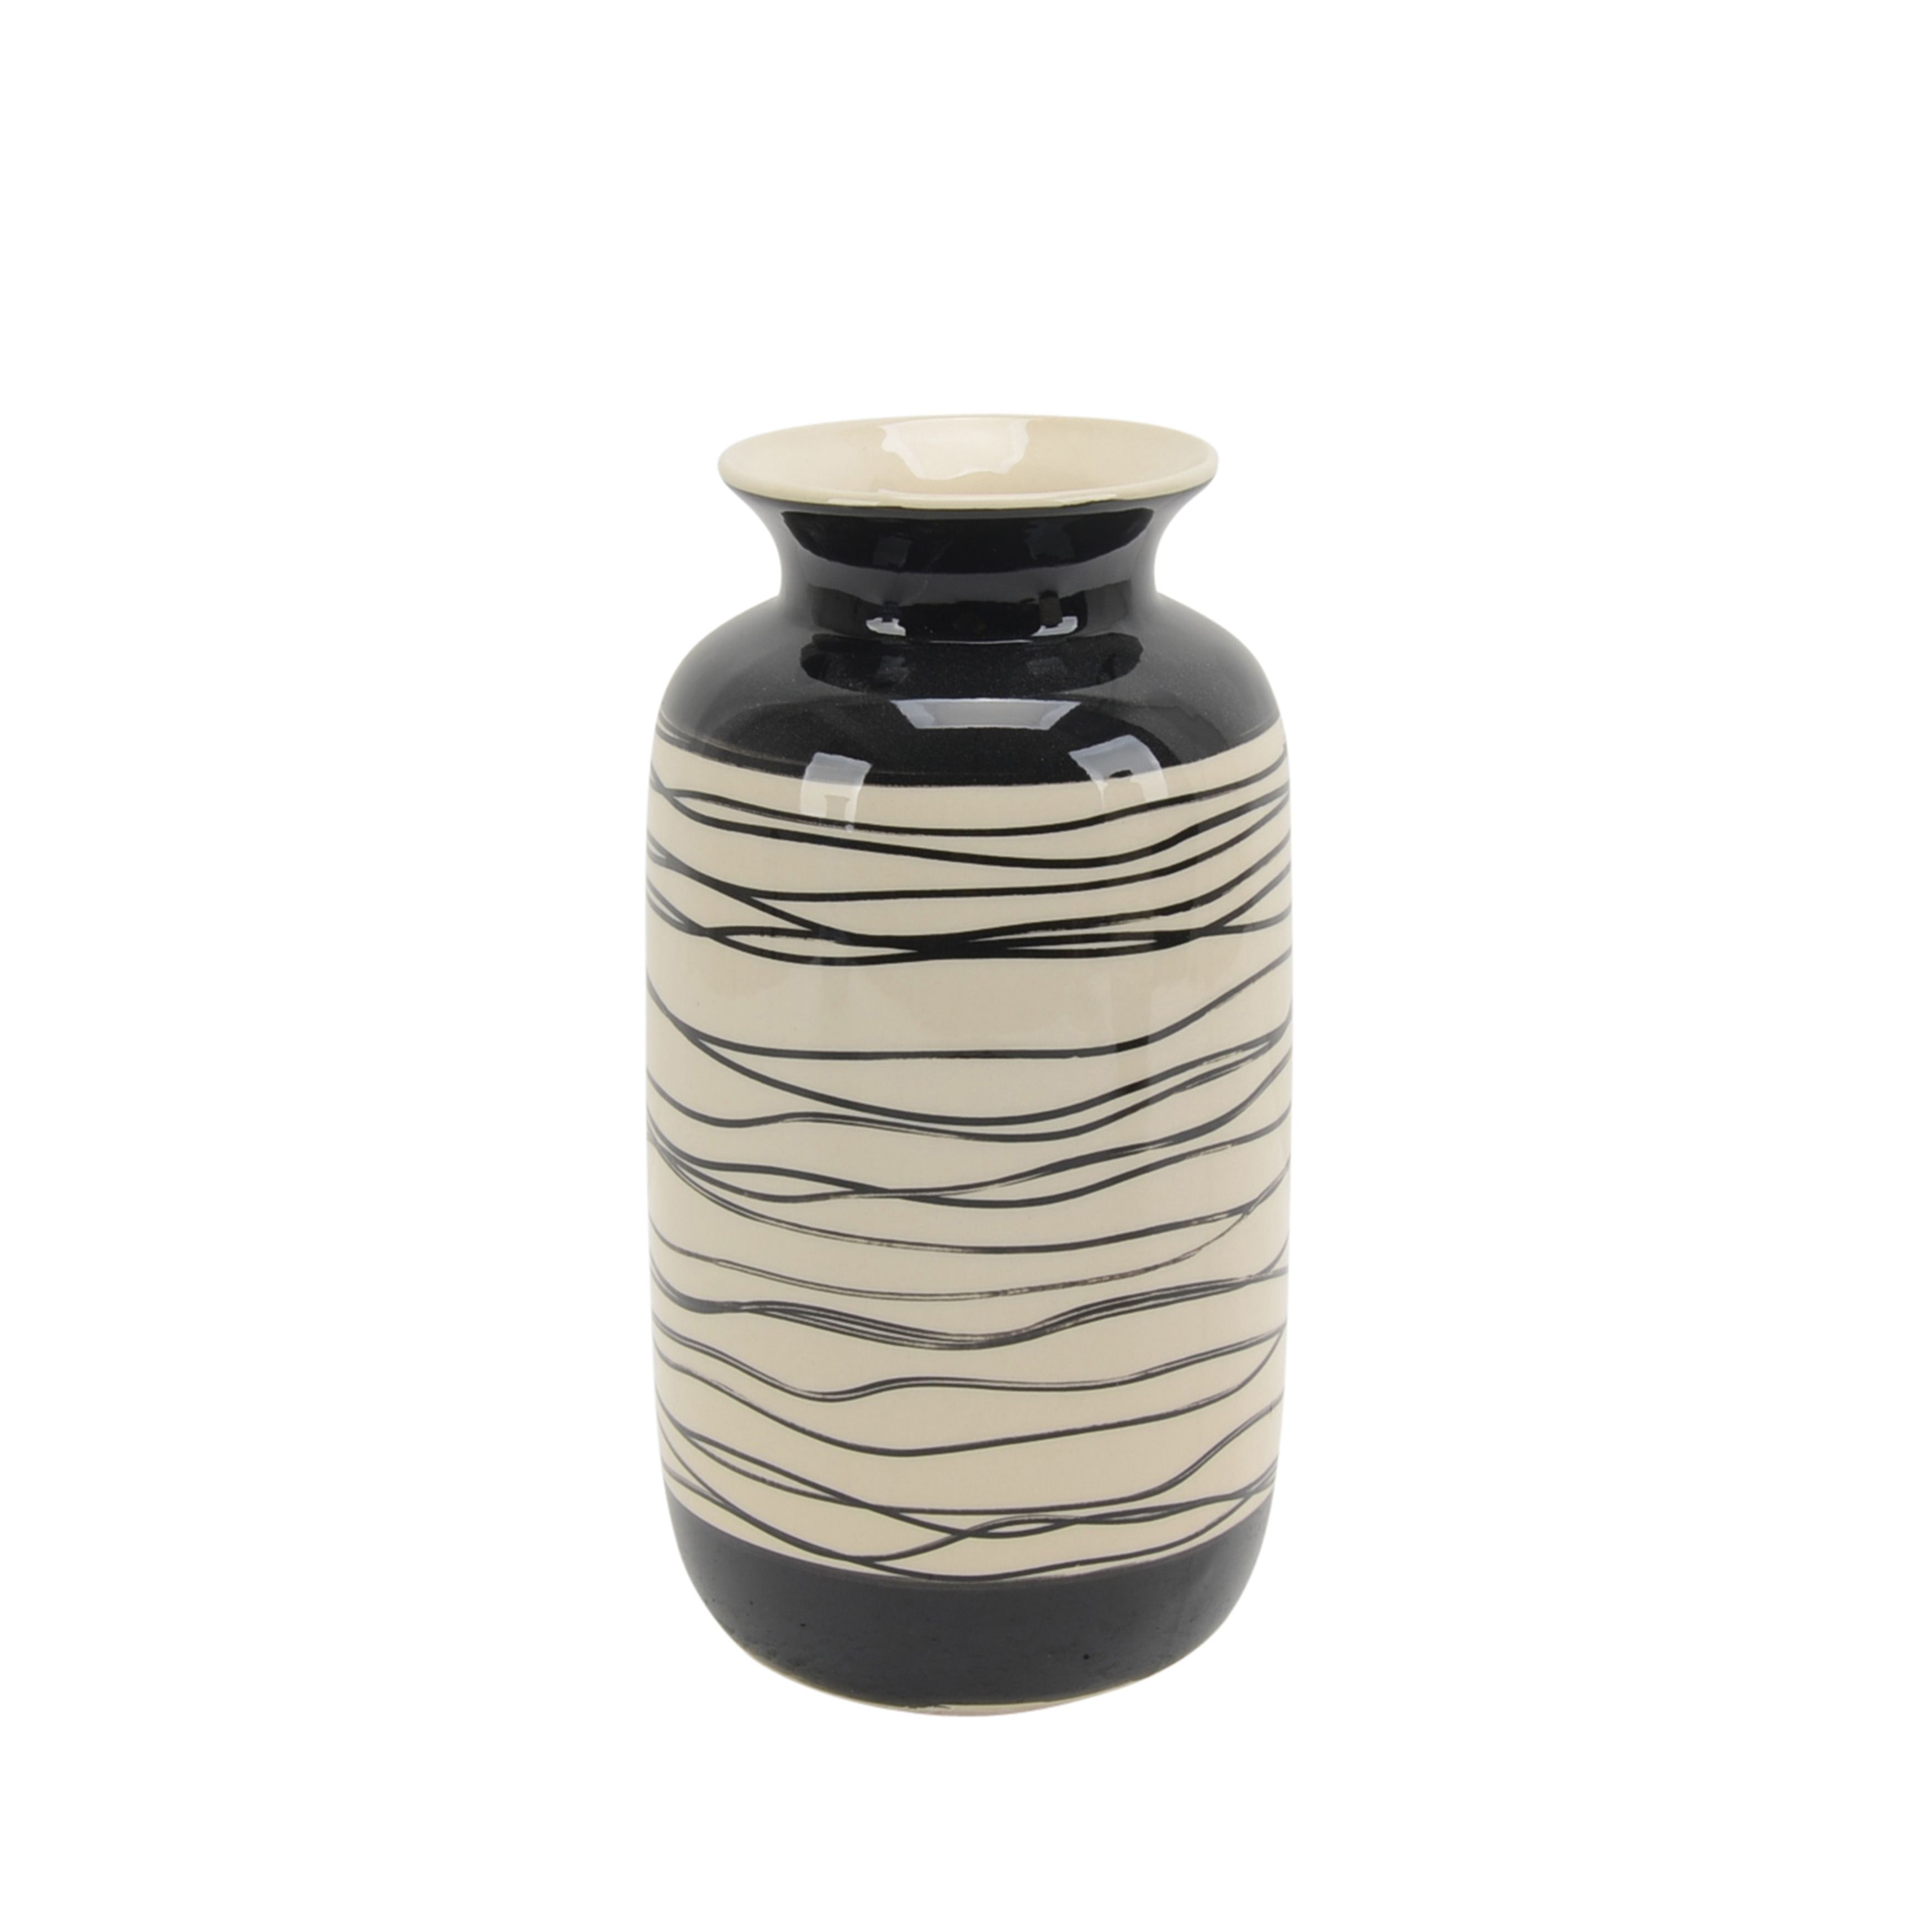 Ceramic Vase with Irregular Circular Pattern and Flared Top, Black and White